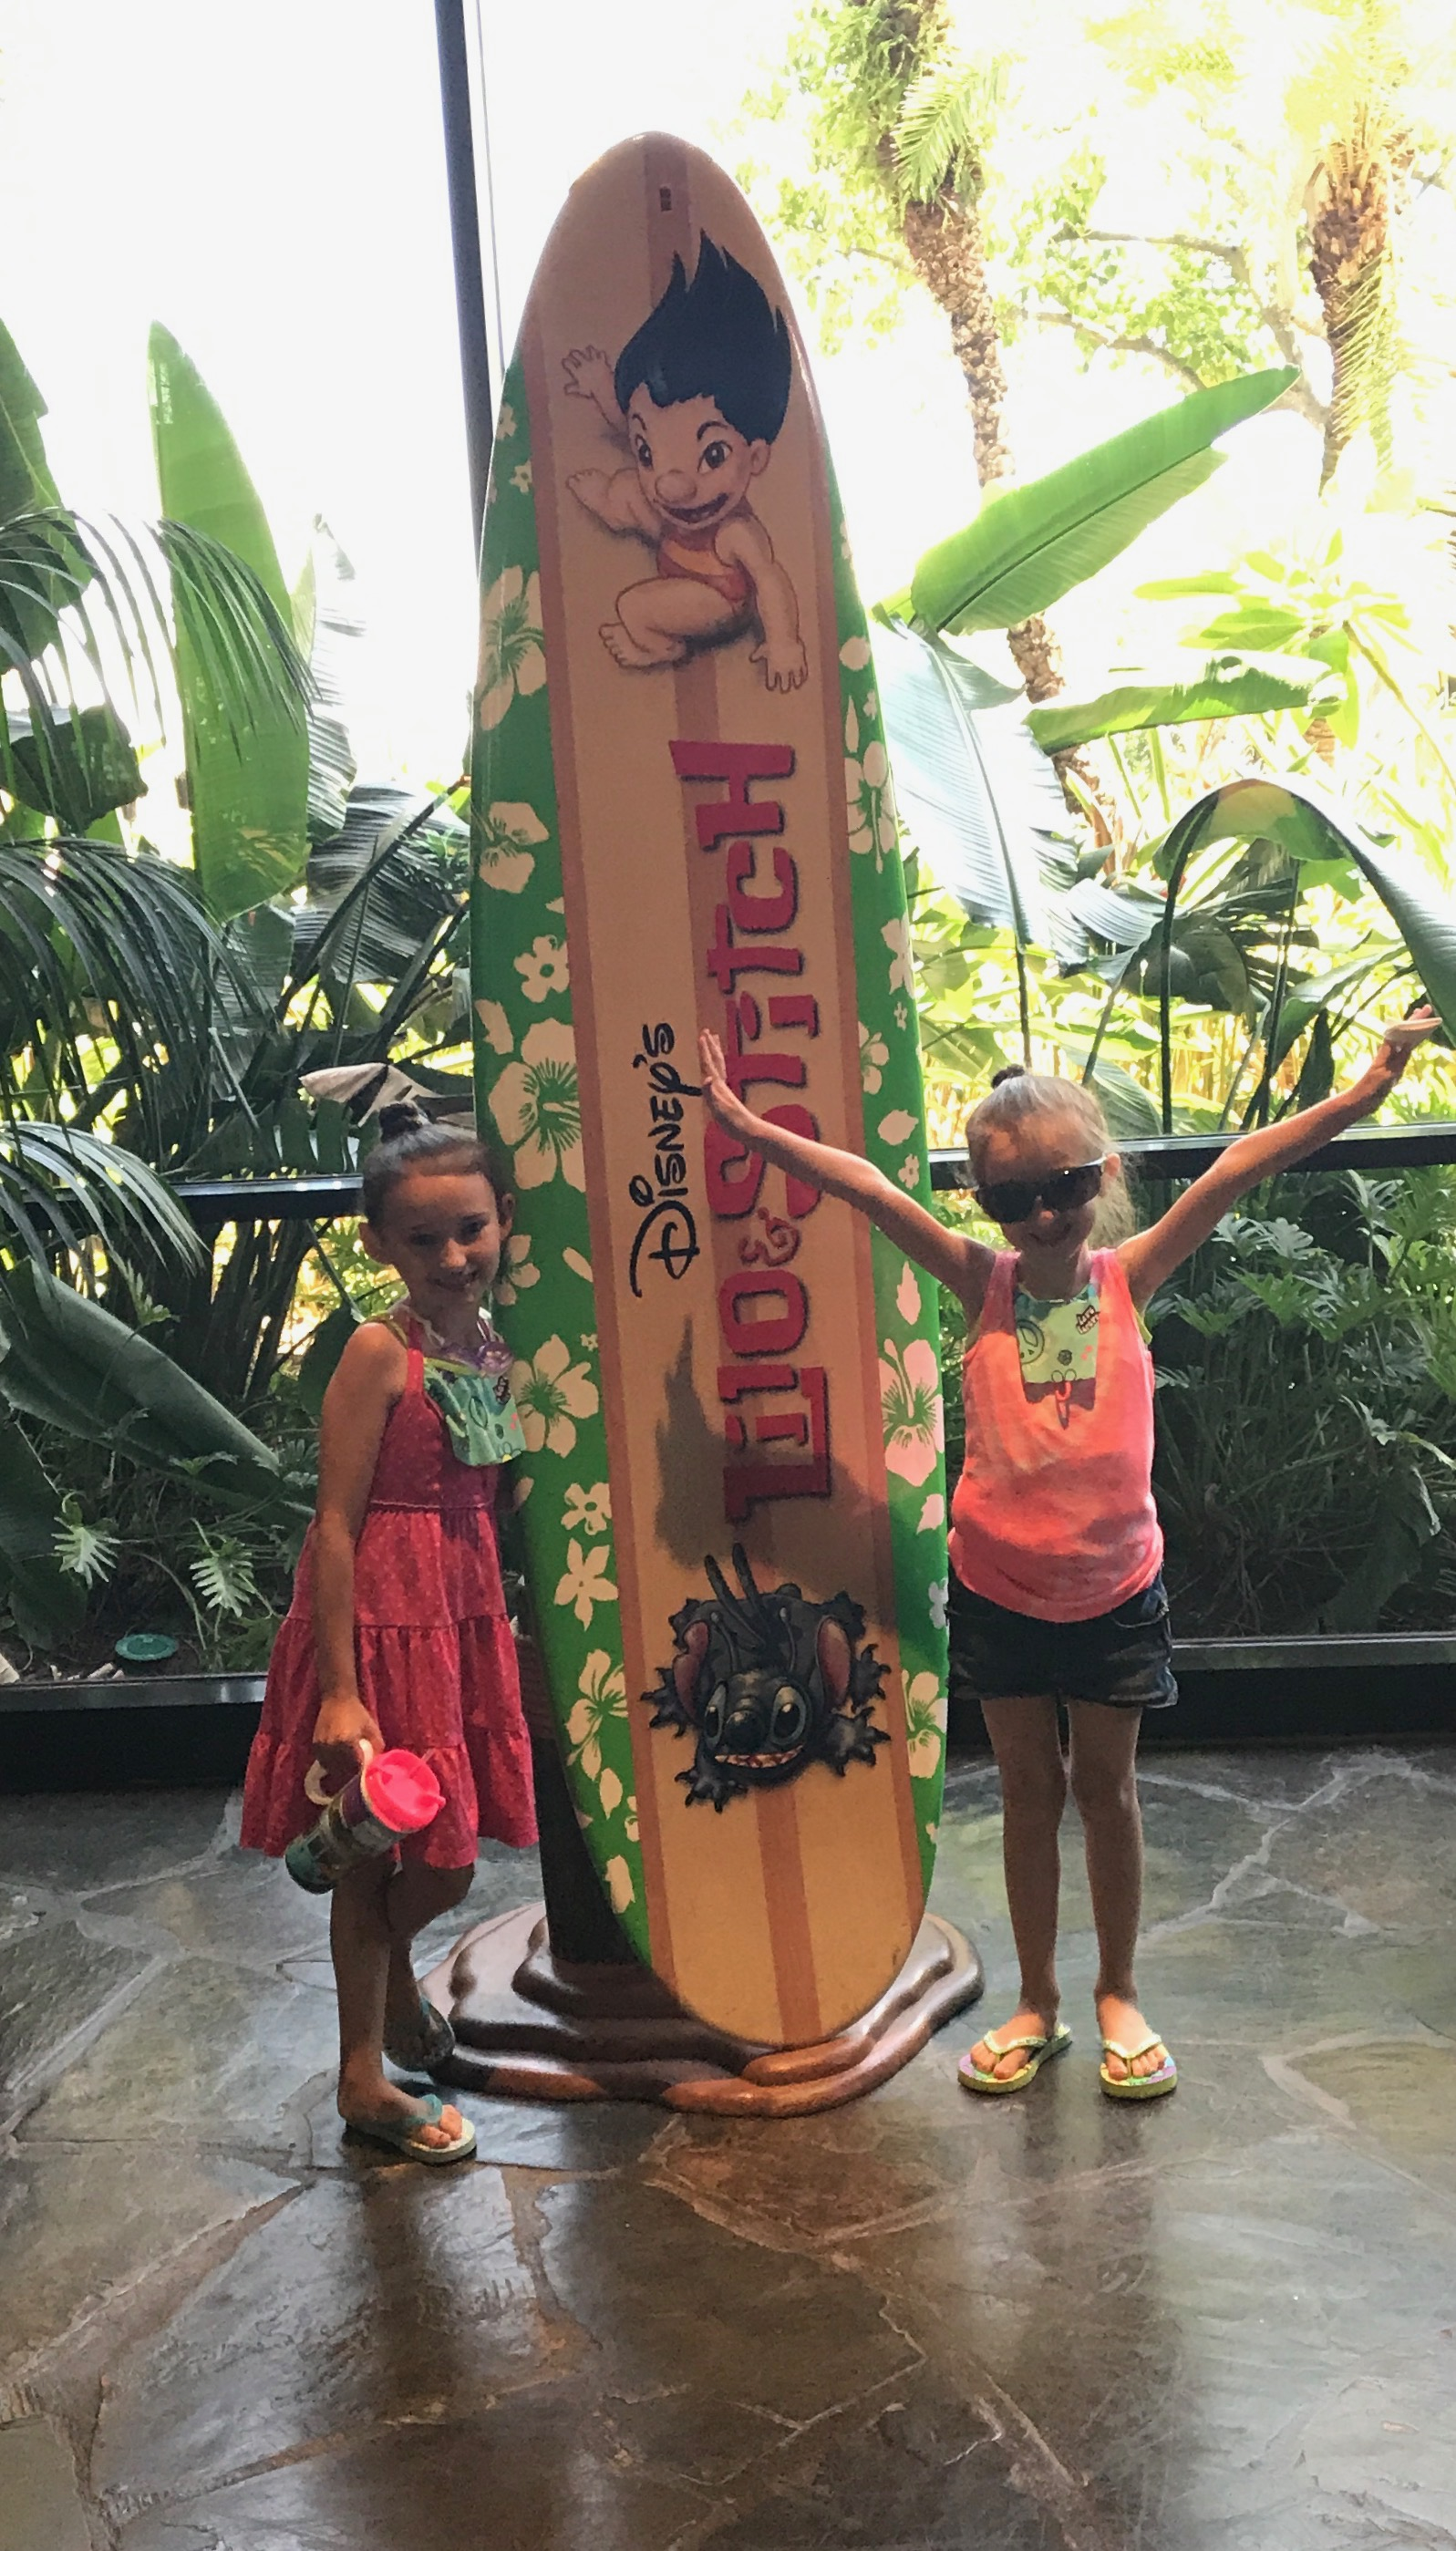 At Disney Polynesian Resort in front of Lily and Stitch Surfboard